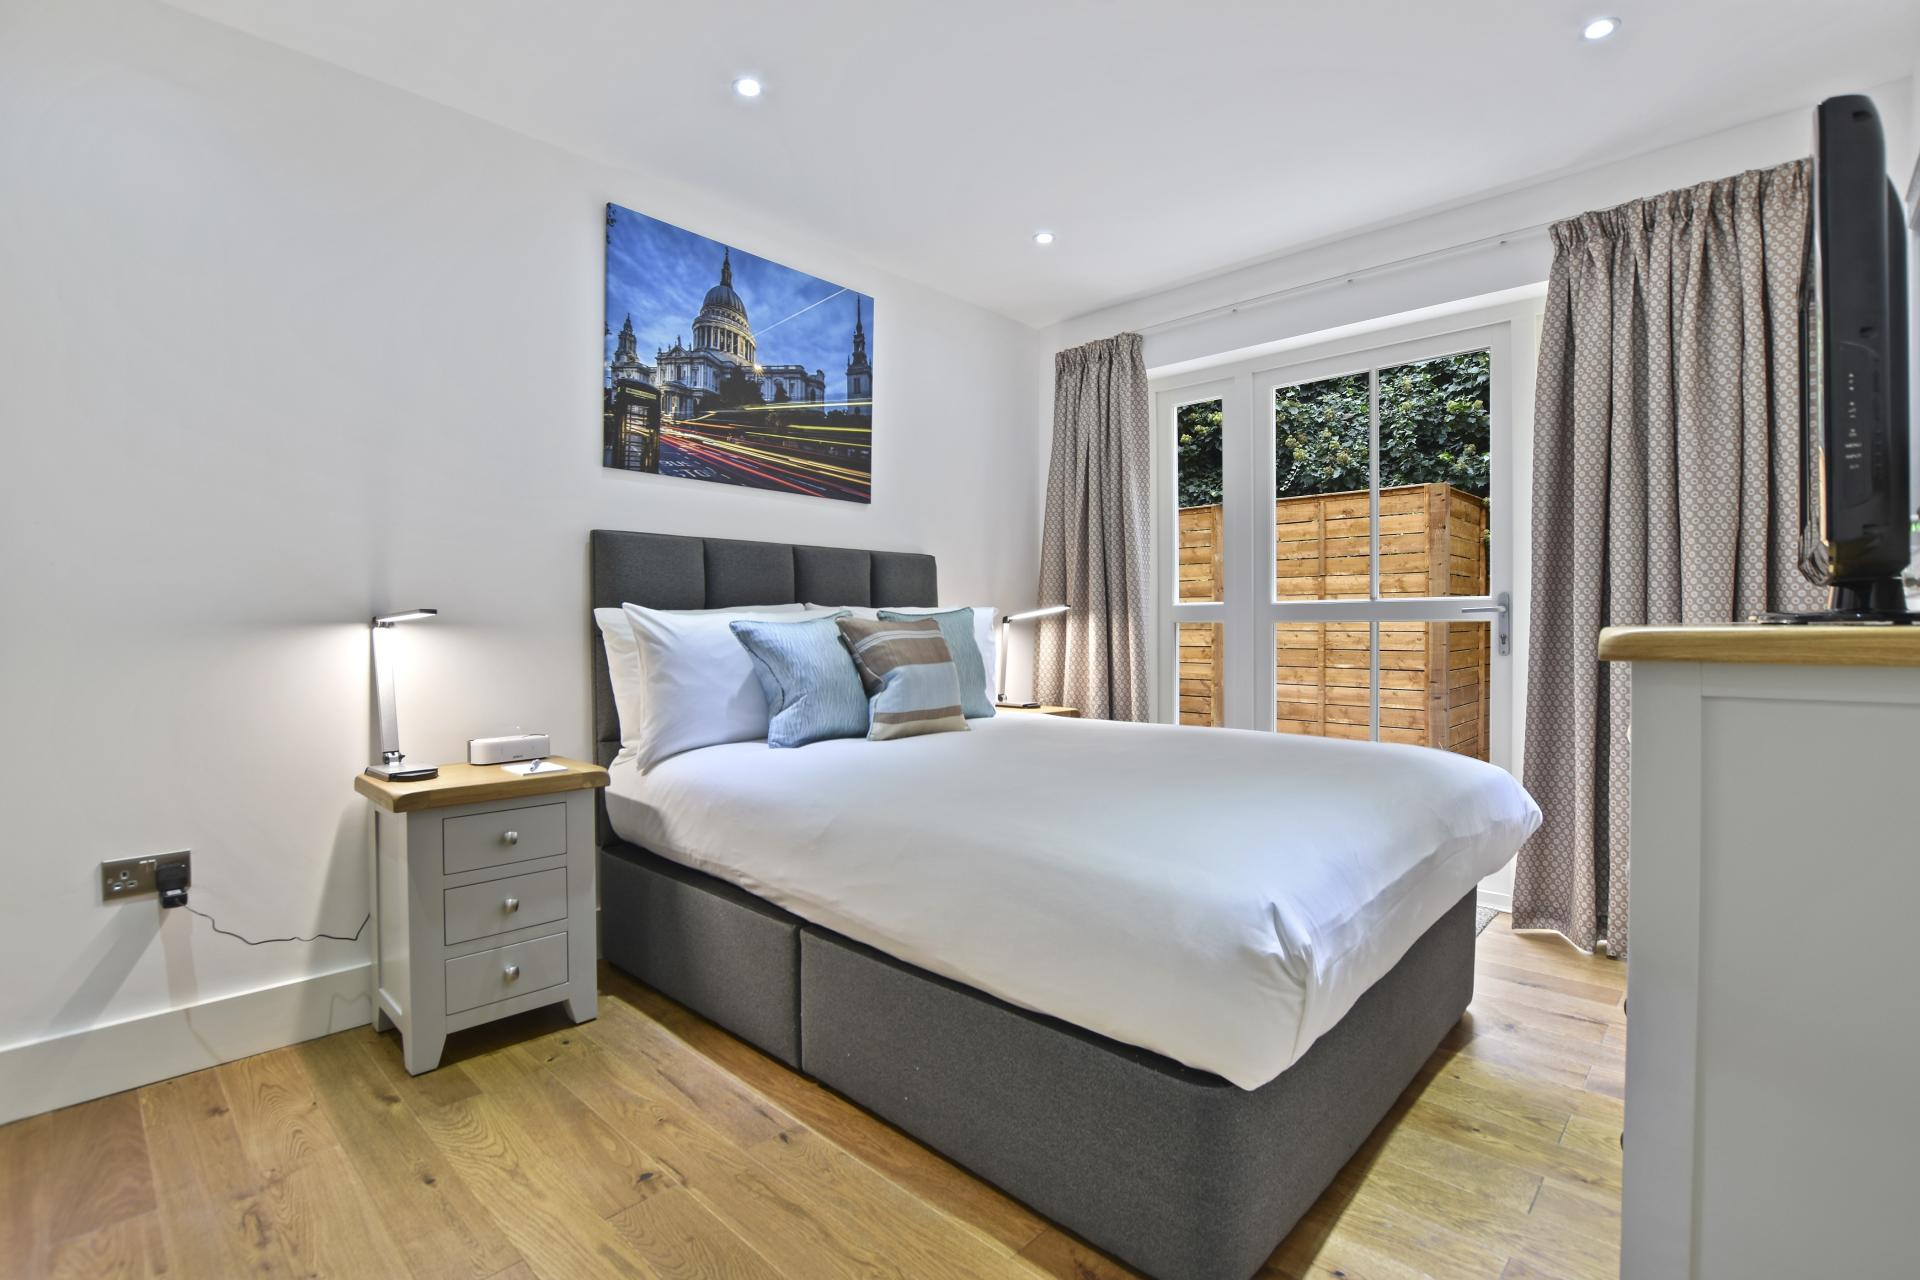 Bedroom at Leinster Square by Bridgestreet, Bayswater, London - Citybase Apartments